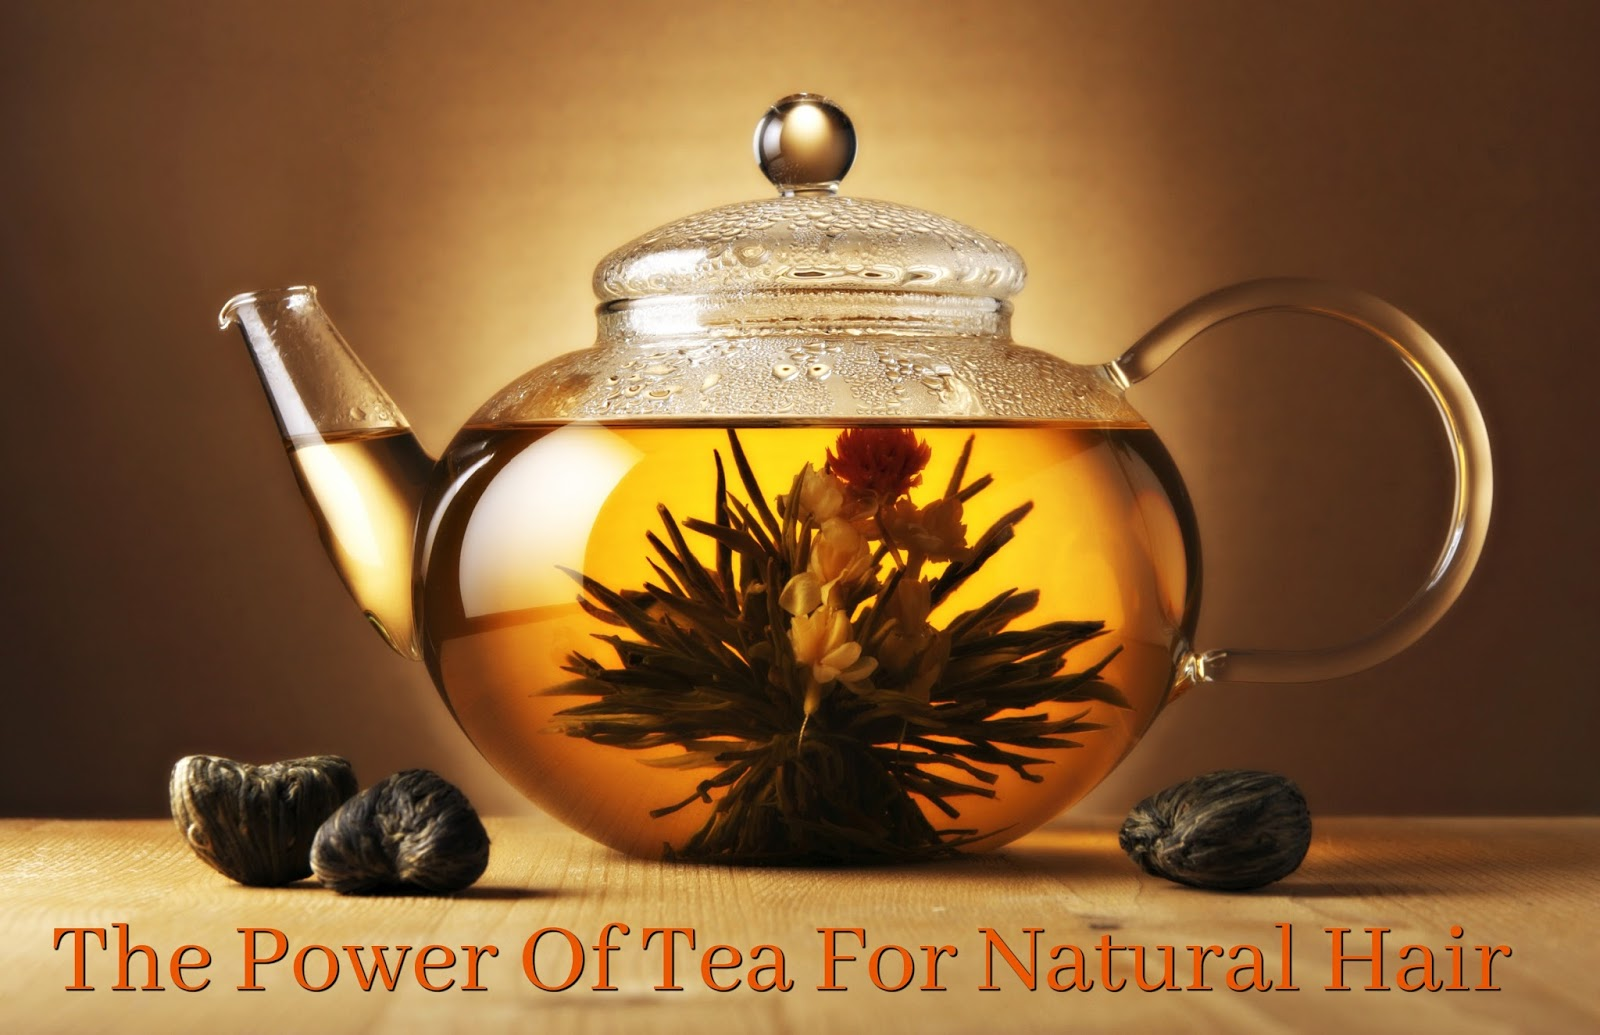 The Power Of Tea For Natural Hair